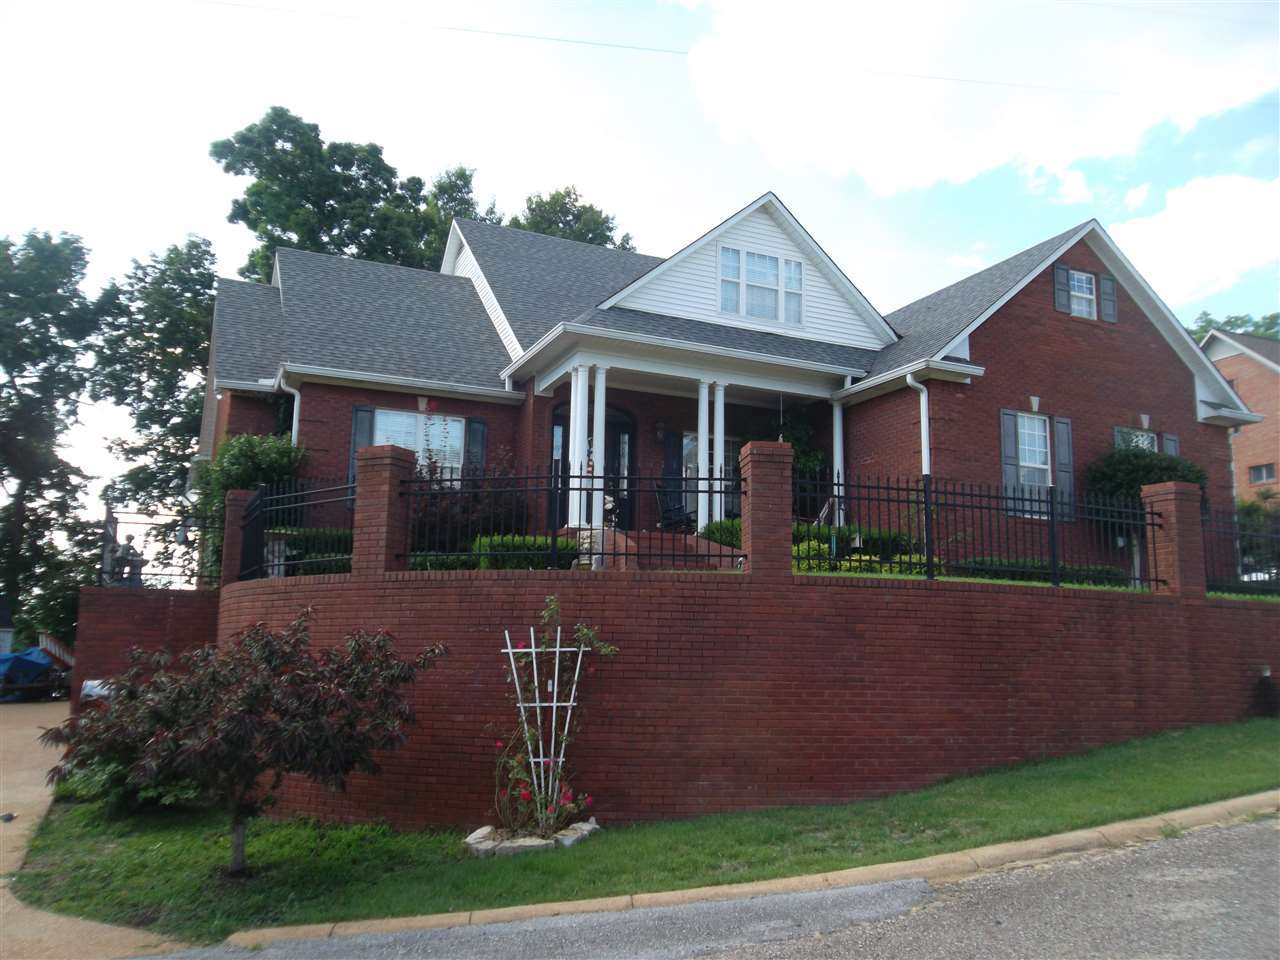 984 Skyline, Clifton, TN 38425